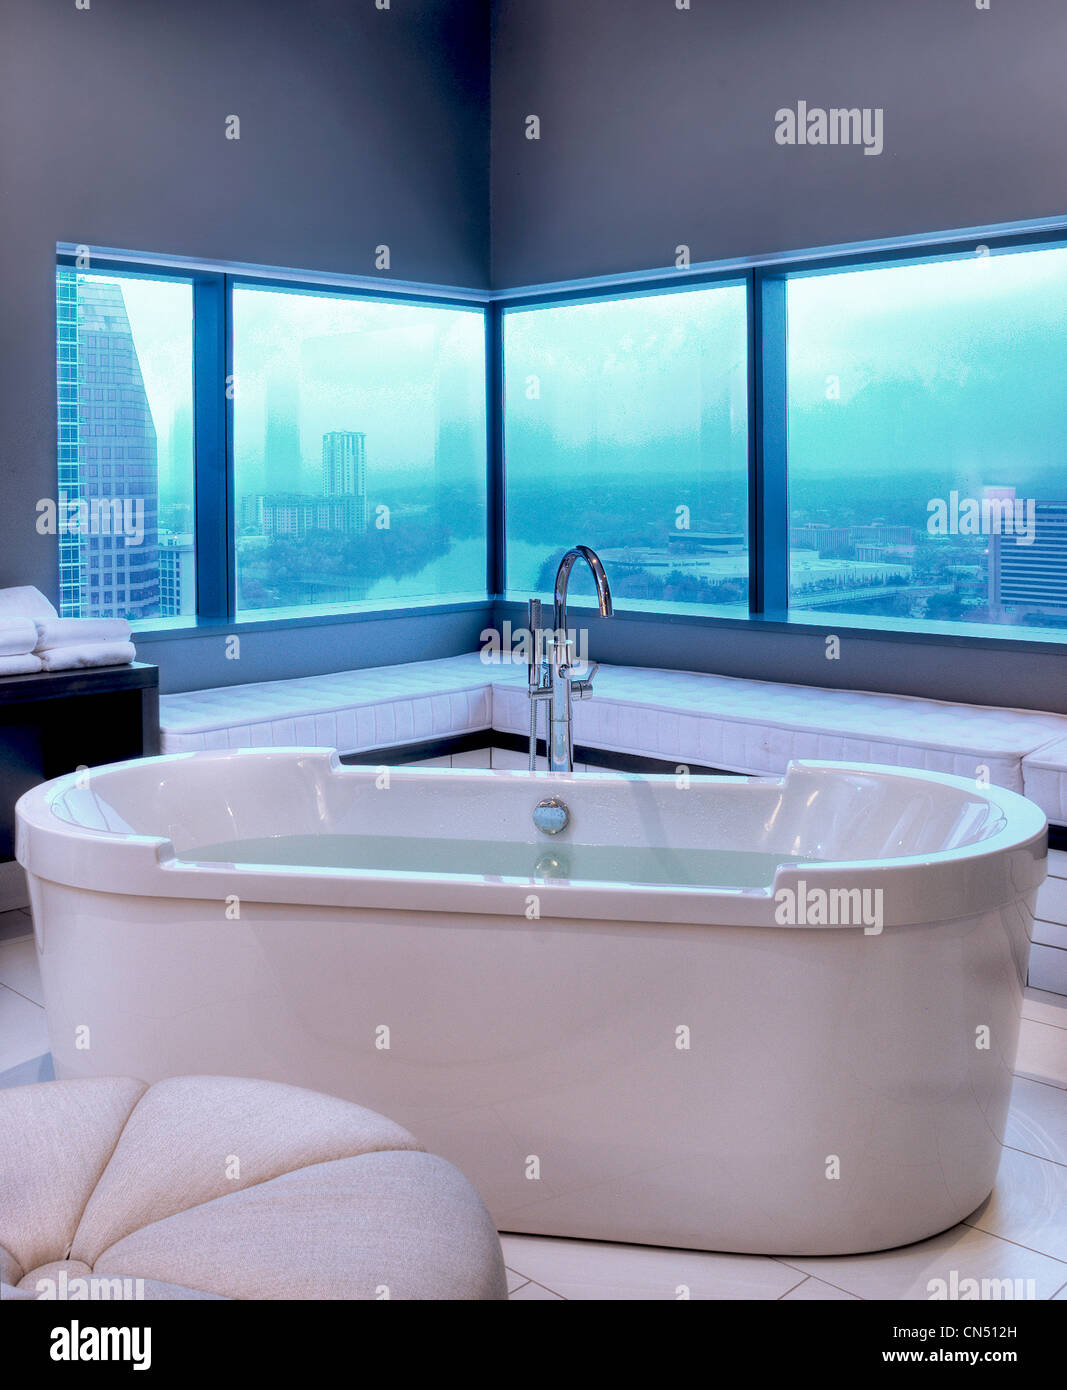 Bathrooms Stock Photos & Bathrooms Stock Images - Alamy